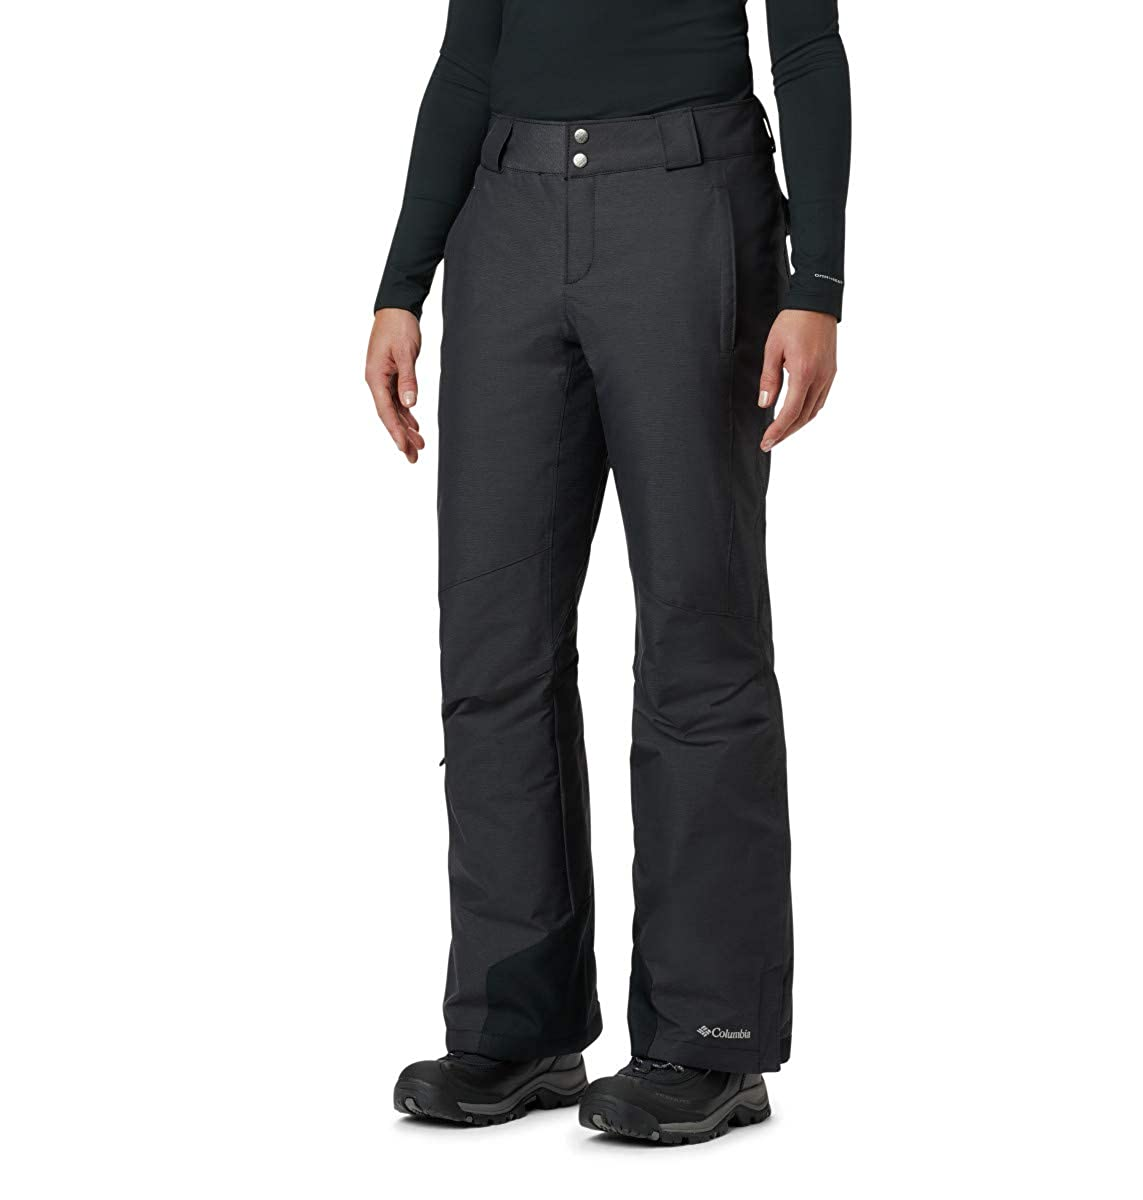 Columbia Women's Plus Size Bugaboo Omni-Heat Pants